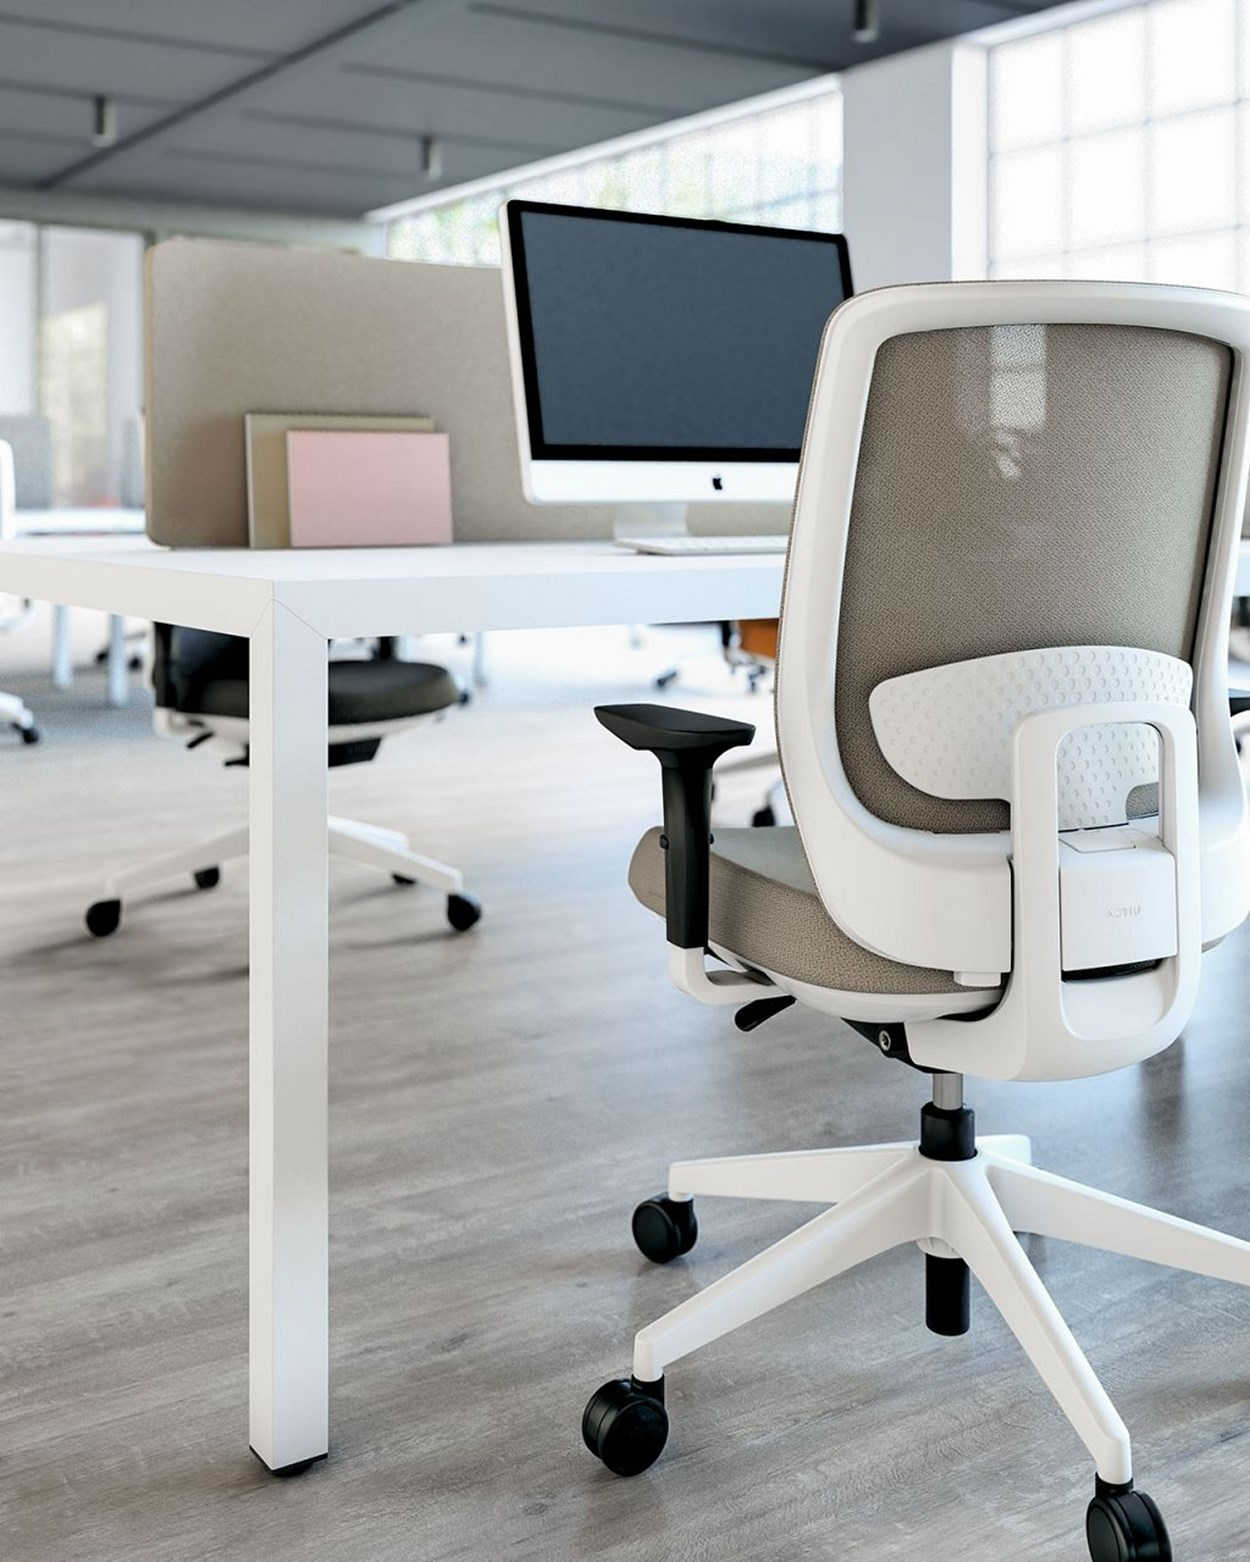 Actiu-trim-Serie30-office-chair-3.jpg